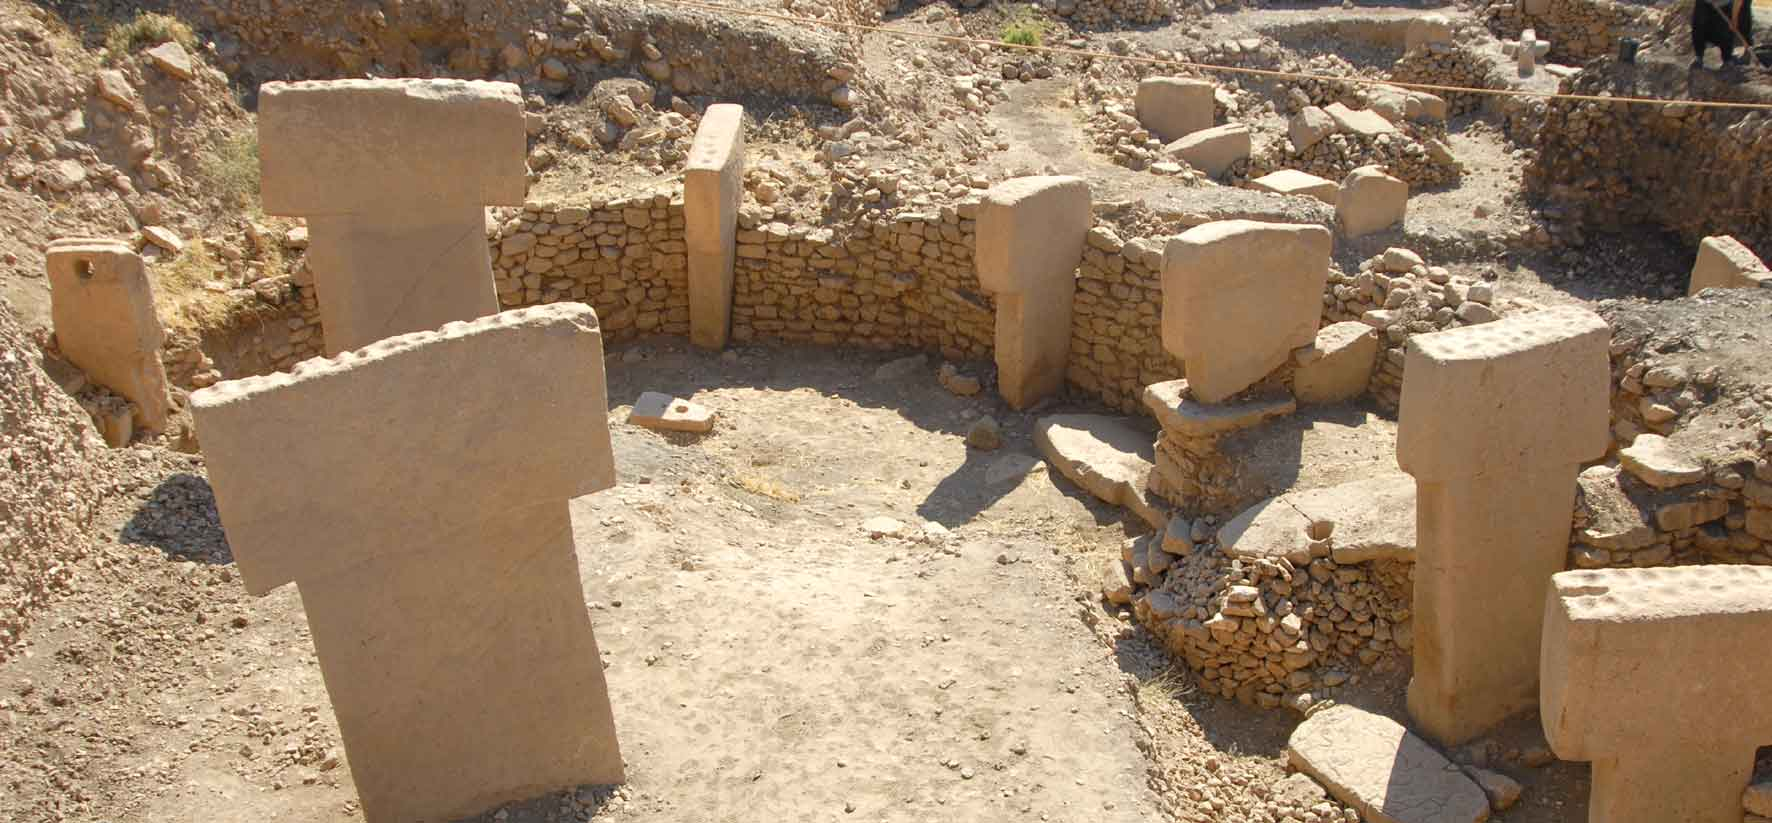 One of the excavated enclosures at Göbekli Tepe, Turkey, with massive T-shaped megaliths forming ancient stone circles thought to be up to 12,000 years old. (Click for a larger view)